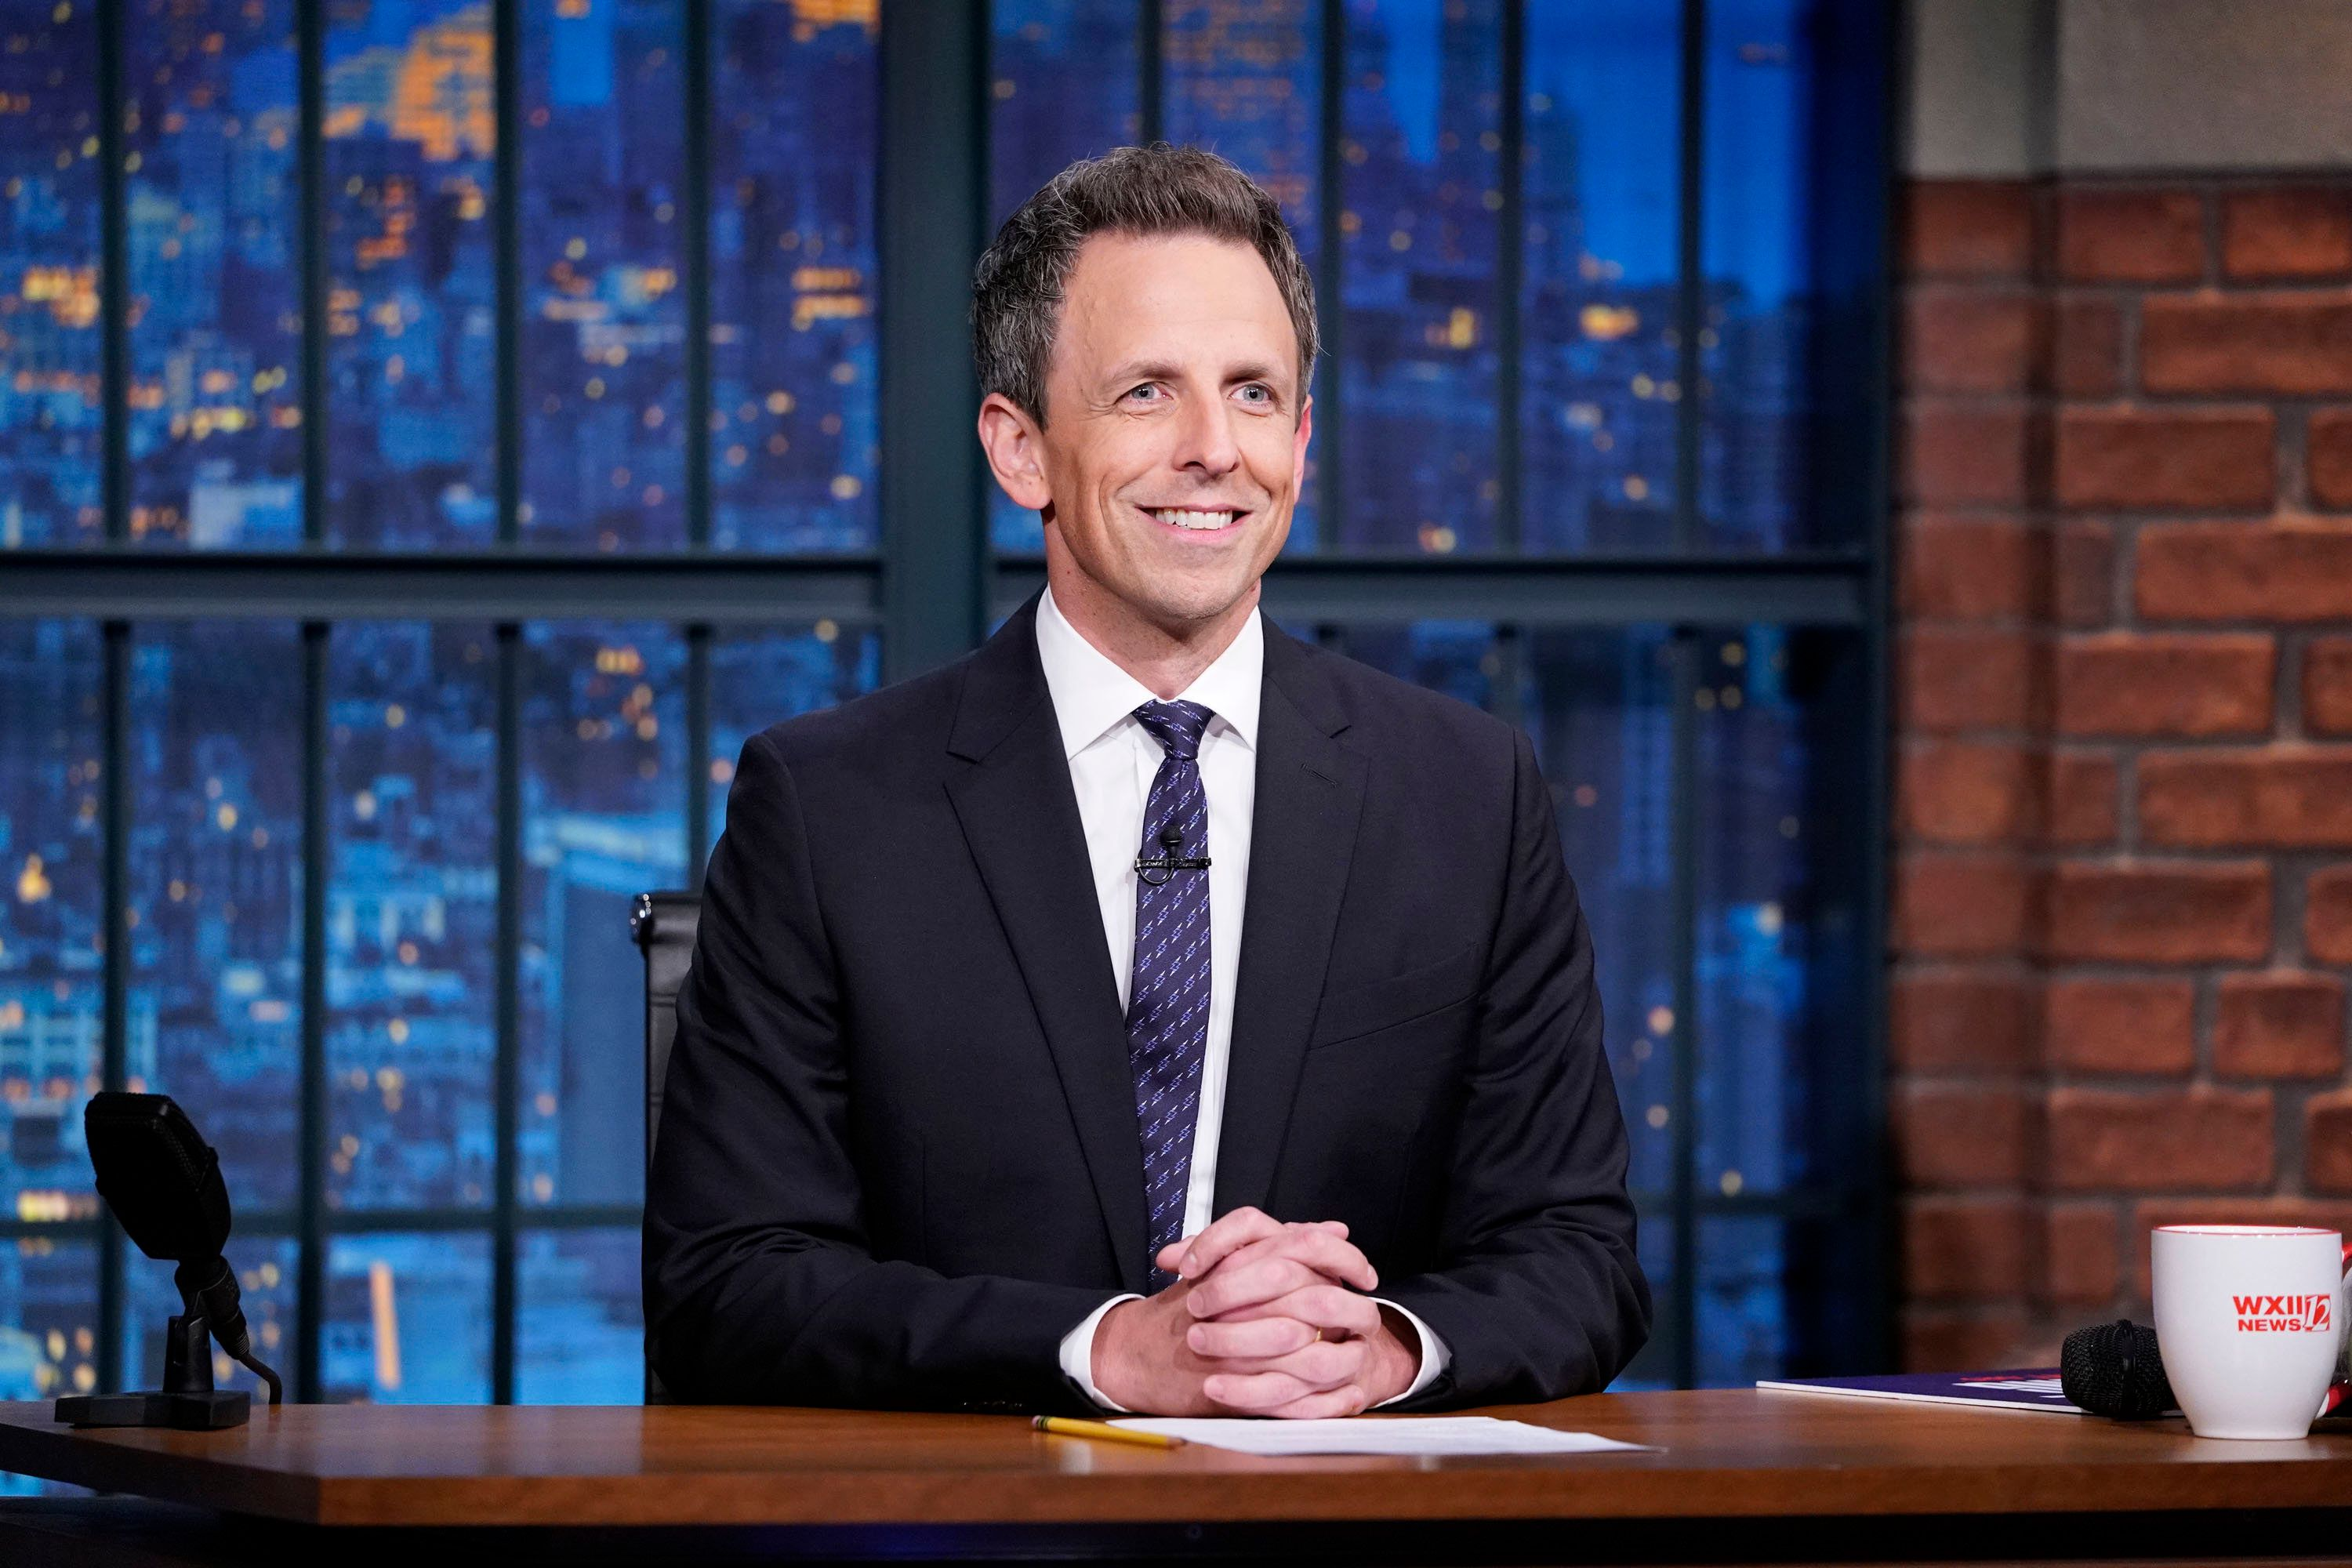 LATE NIGHT WITH SETH MEYERS -- Episode 753 -- Pictured: Host Seth Meyers during the monologue on November 5, 2018 -- (Photo by: Lloyd Bishop/NBC/NBCU Photo Bank via Getty Images)